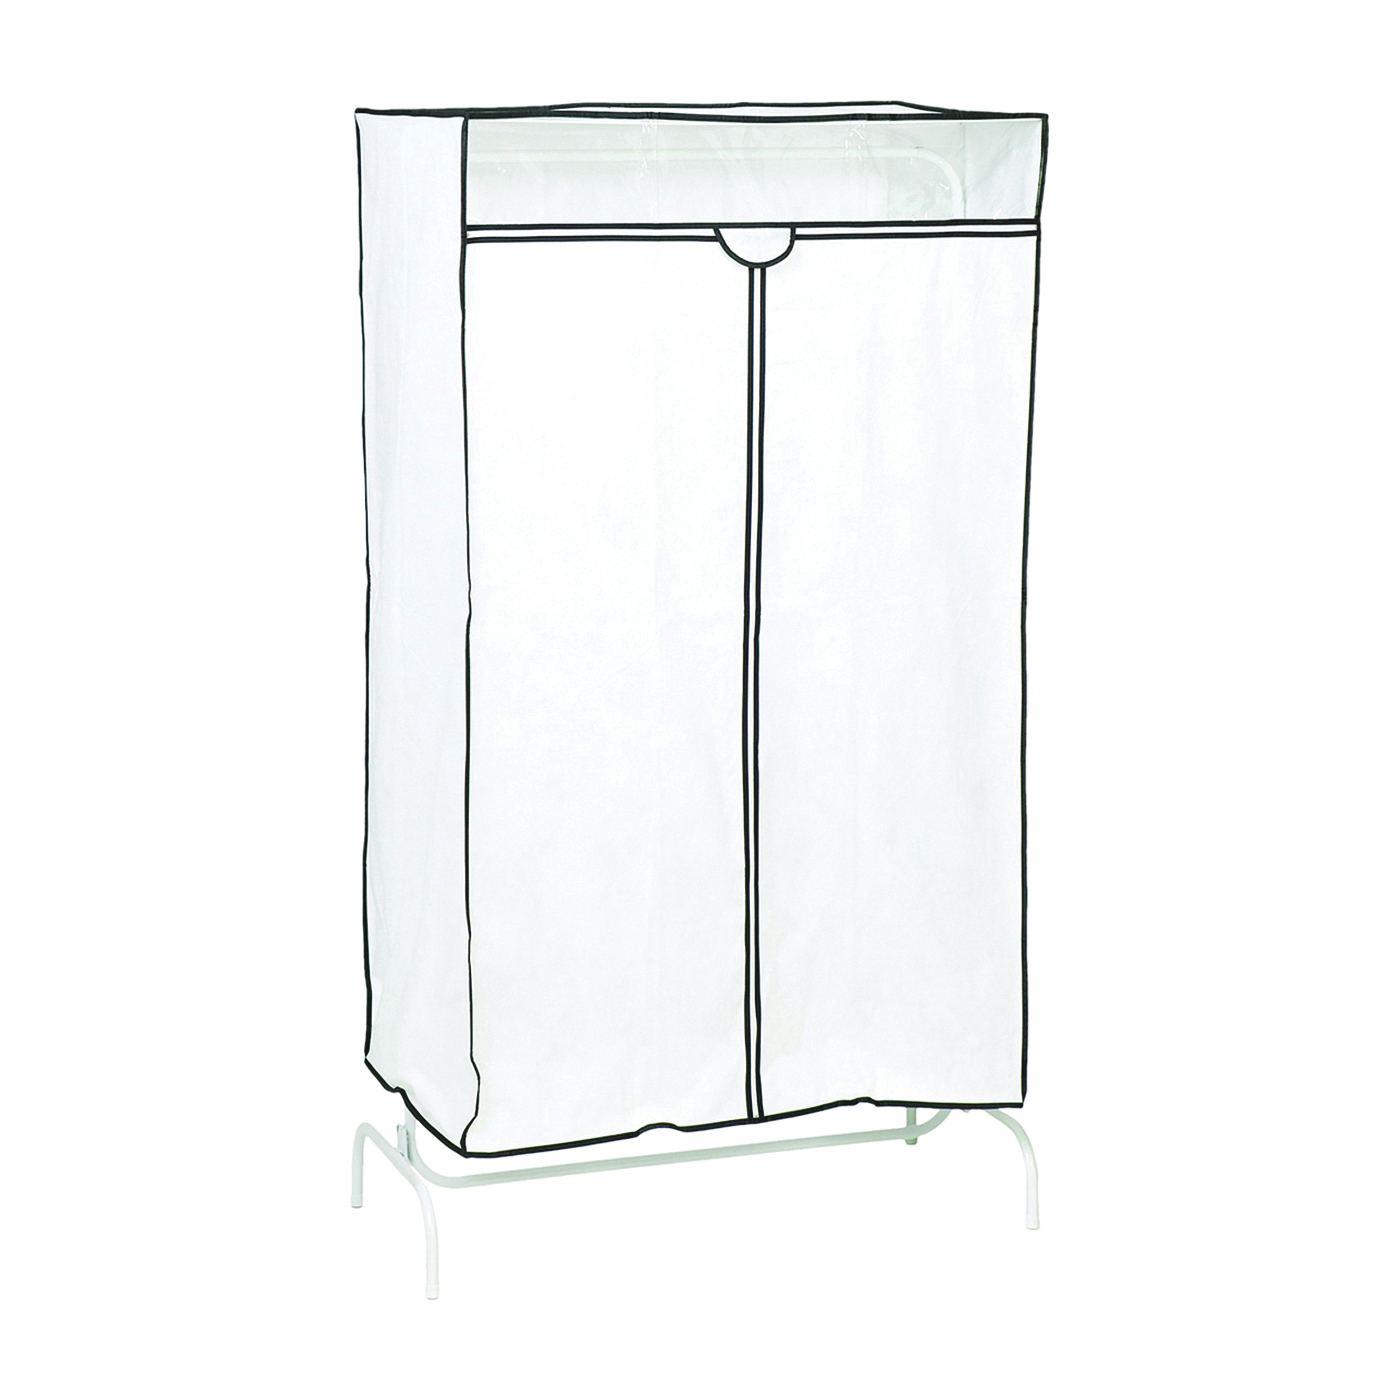 Picture of ClosetMaid 1095 Portable Closet, 34-1/4 in W, Steel